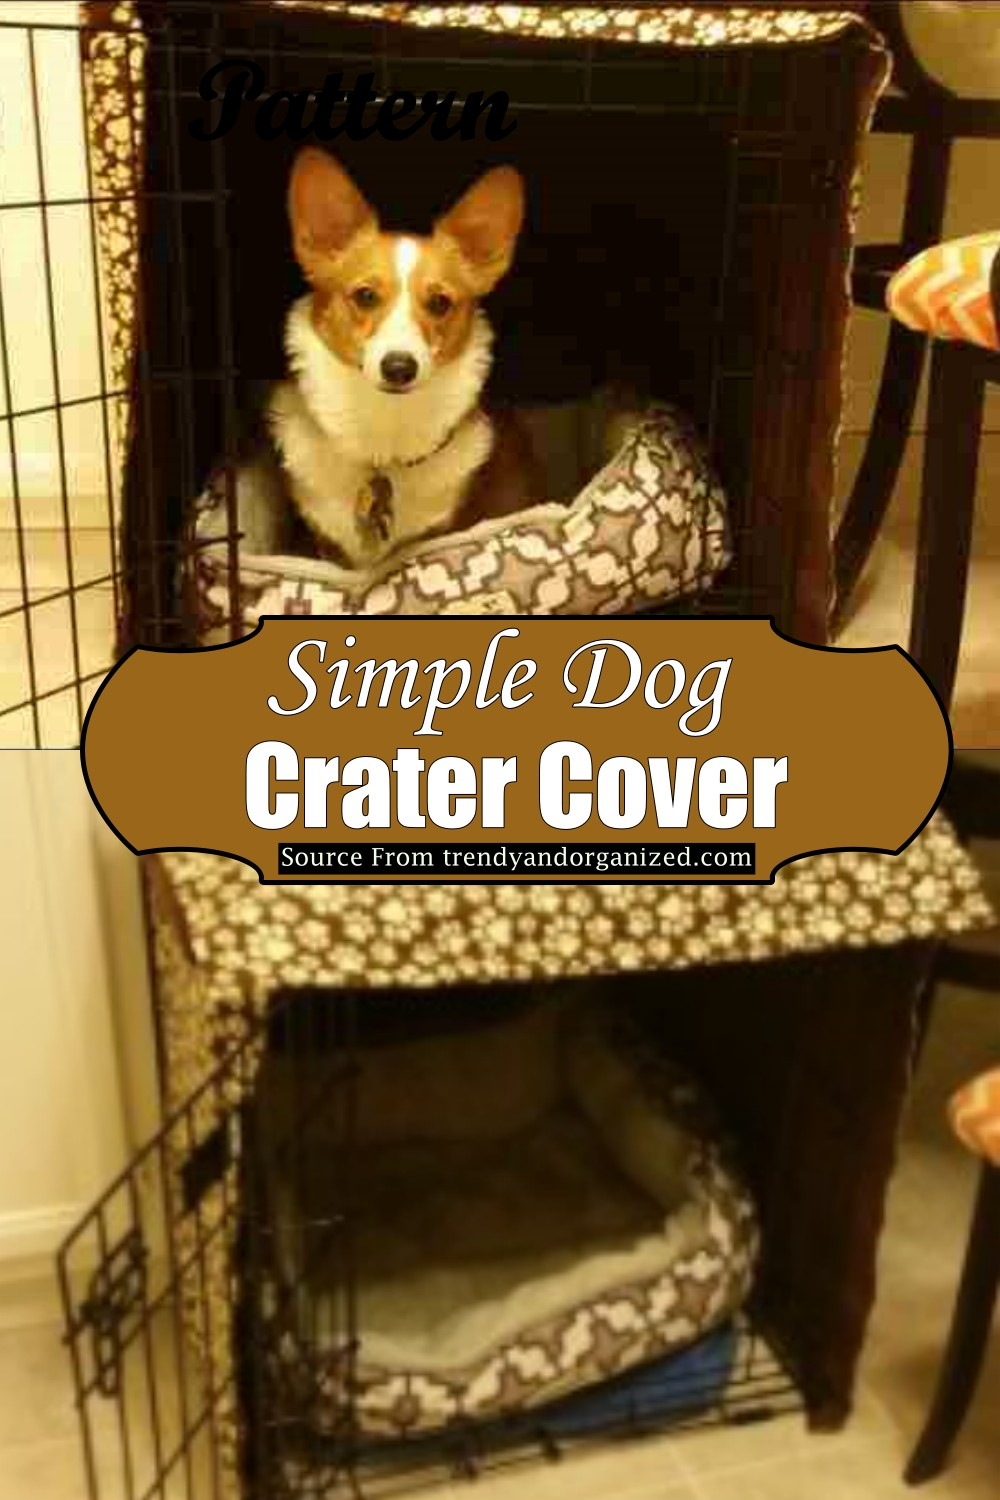 Simple Dog Crater Cover